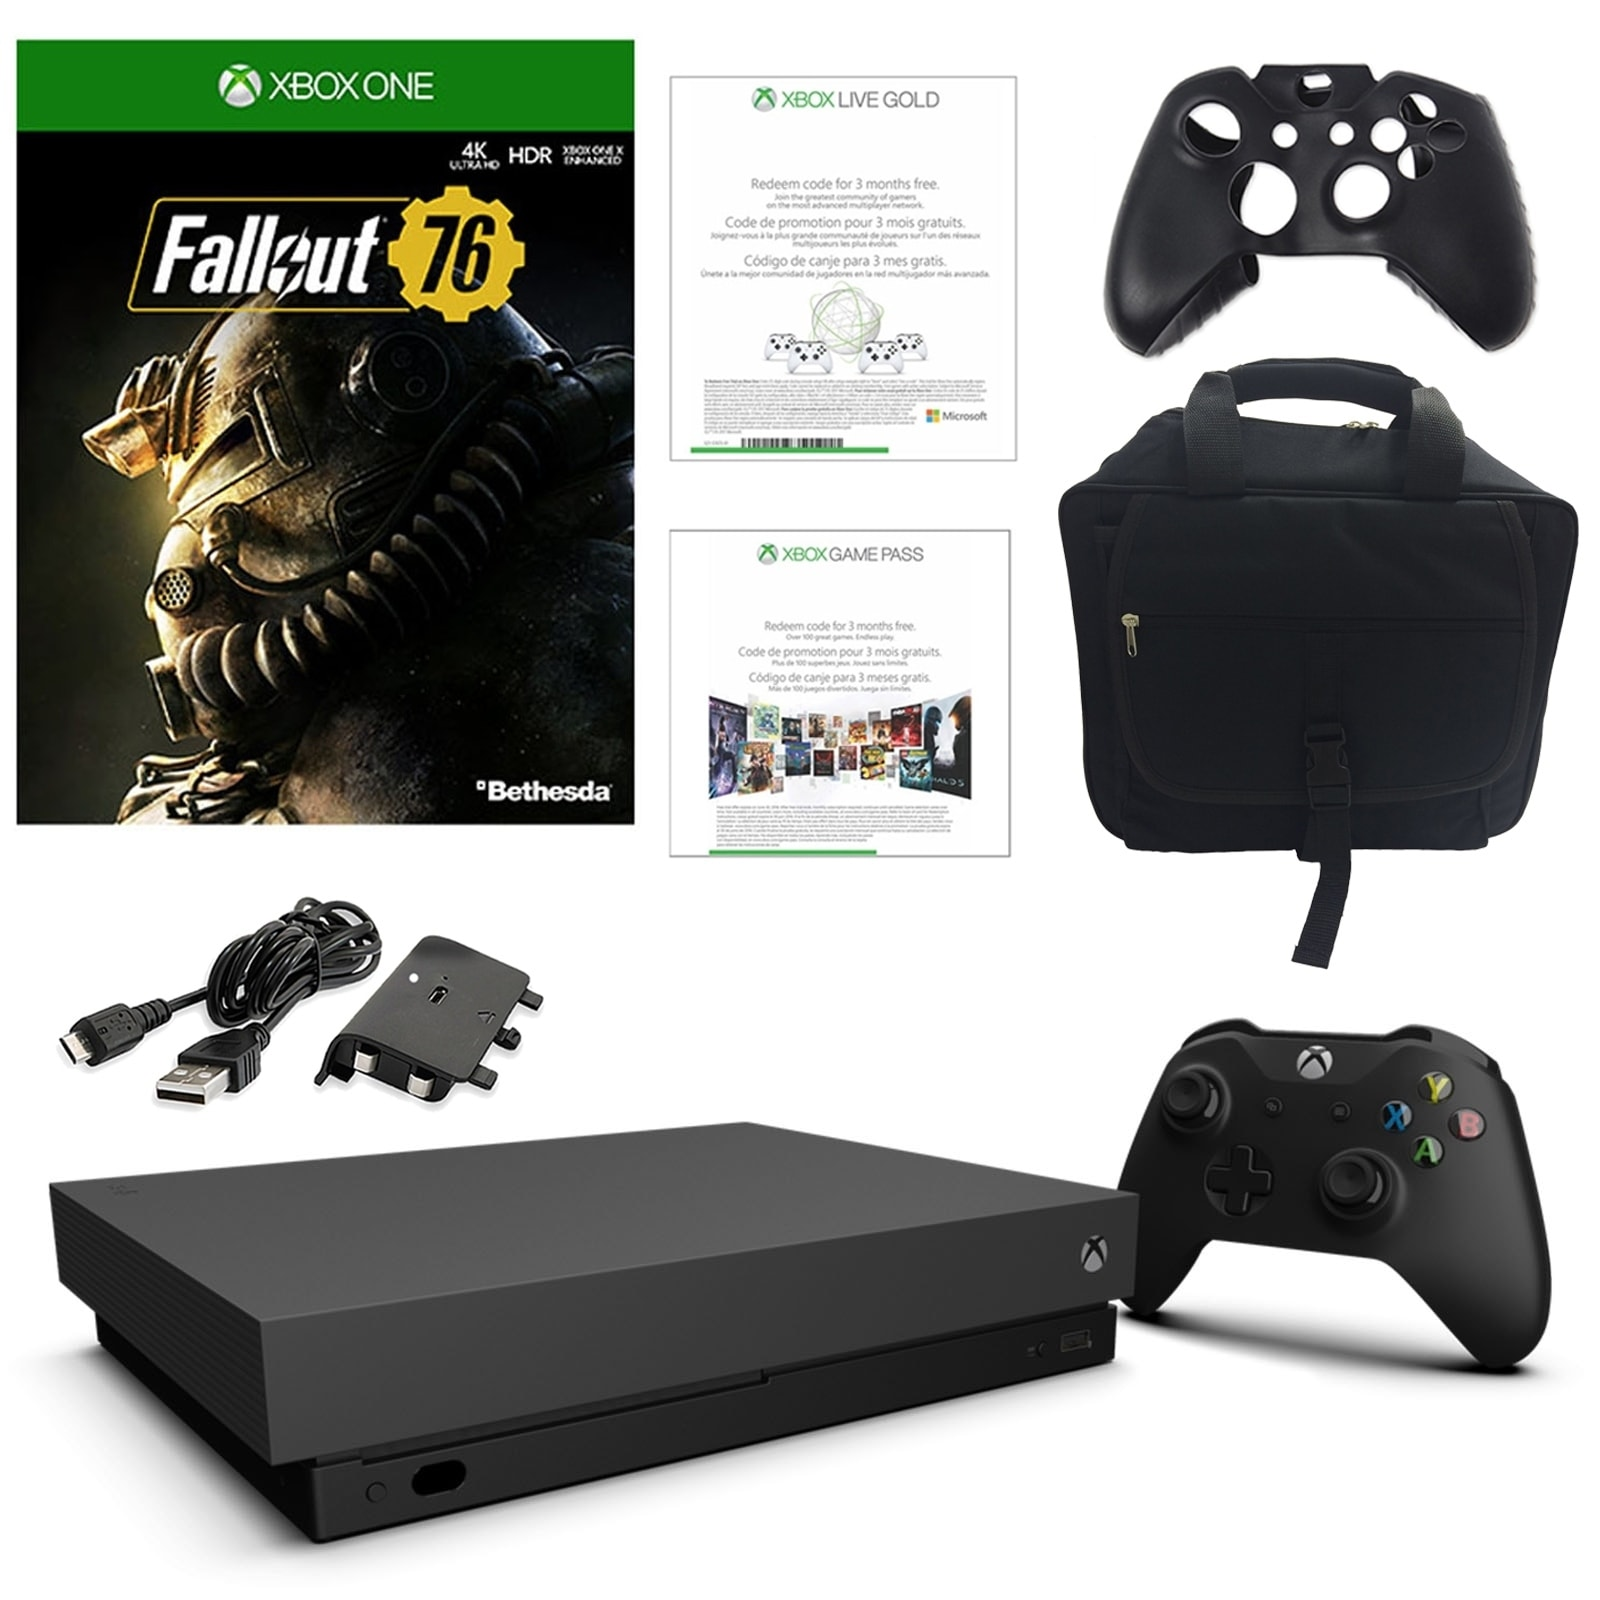 Xbox One X 1TB Fallout 76 Console with Console Bag and Accessories